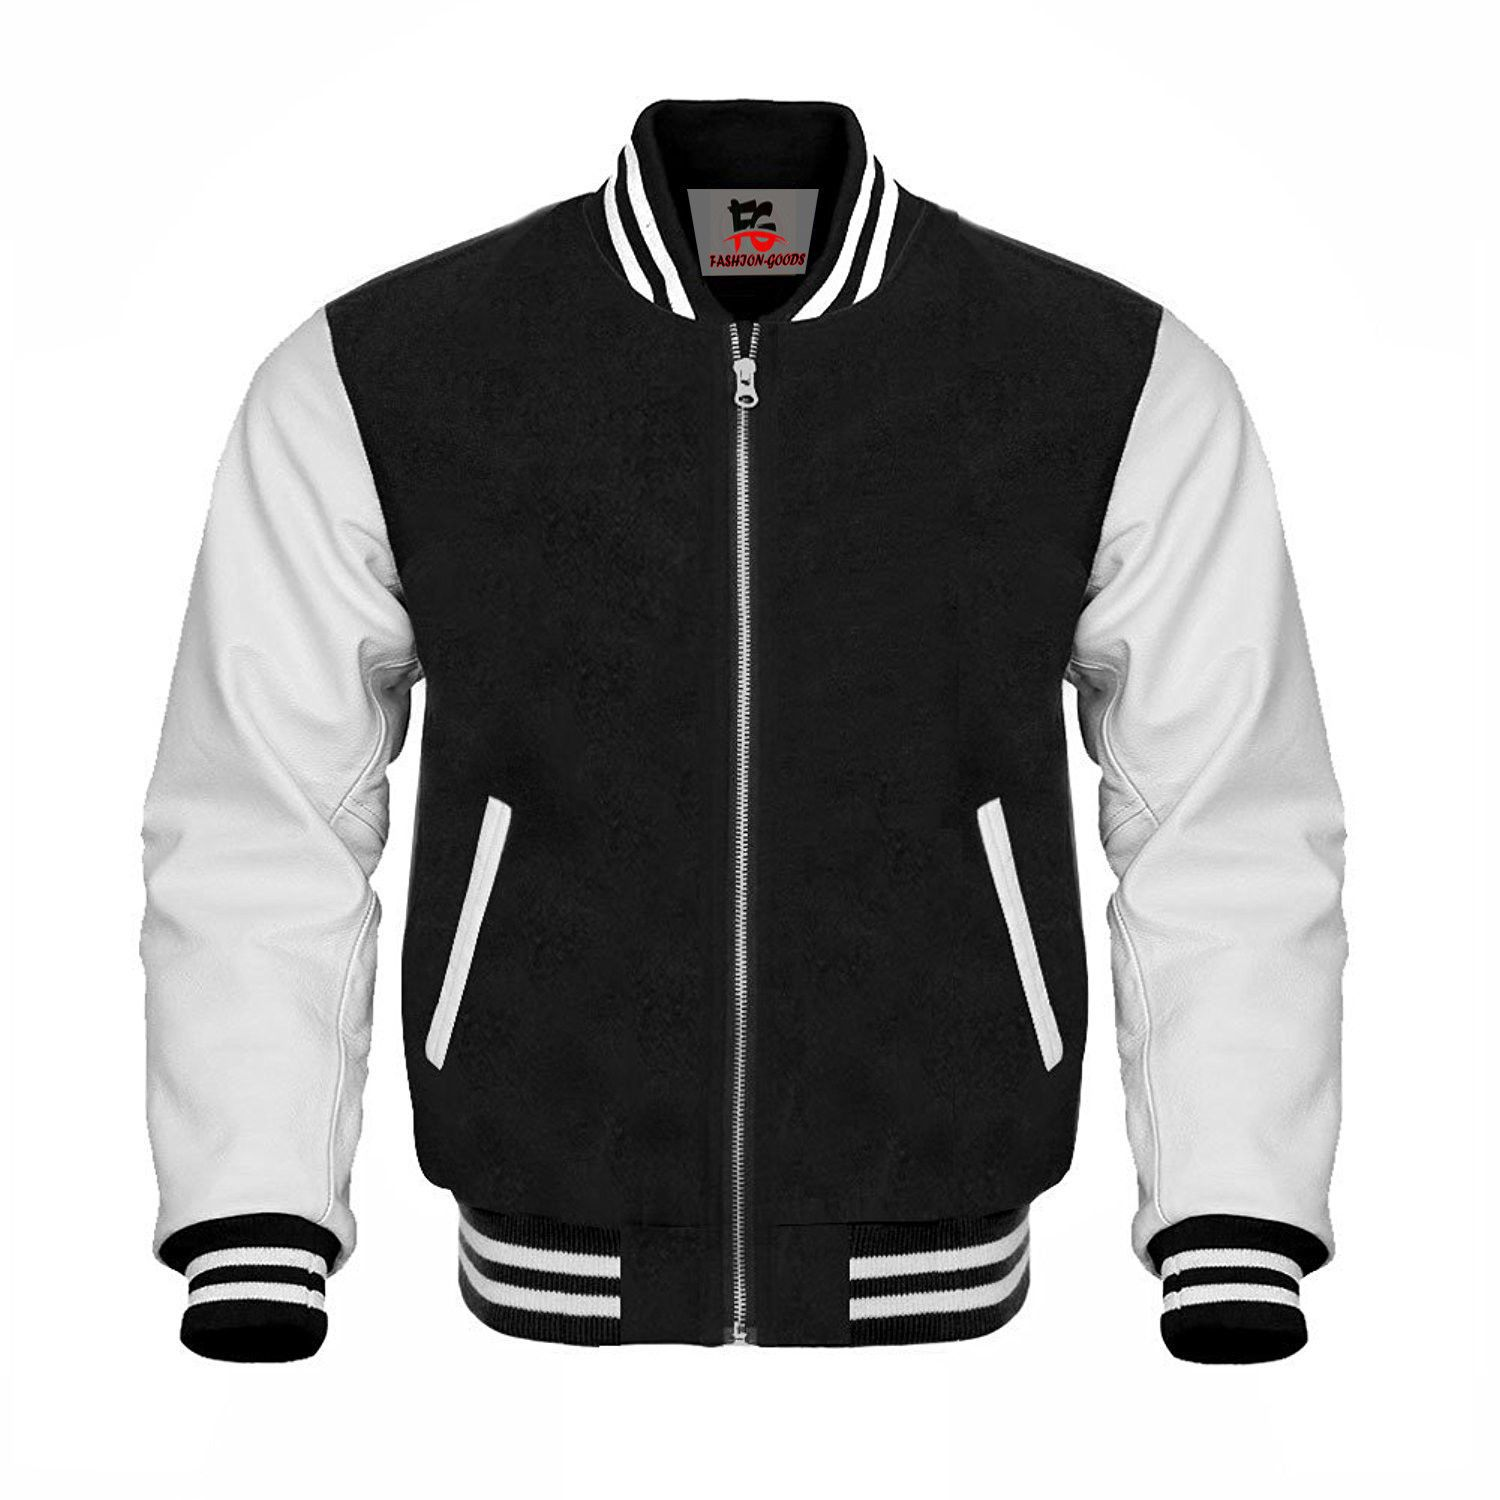 Varsity Baseball Black Wool White Genuine Leather Sleeve Jacket Letterman Leather Sleeve Jacket Black Letterman Jacket Leather Varsity Jackets